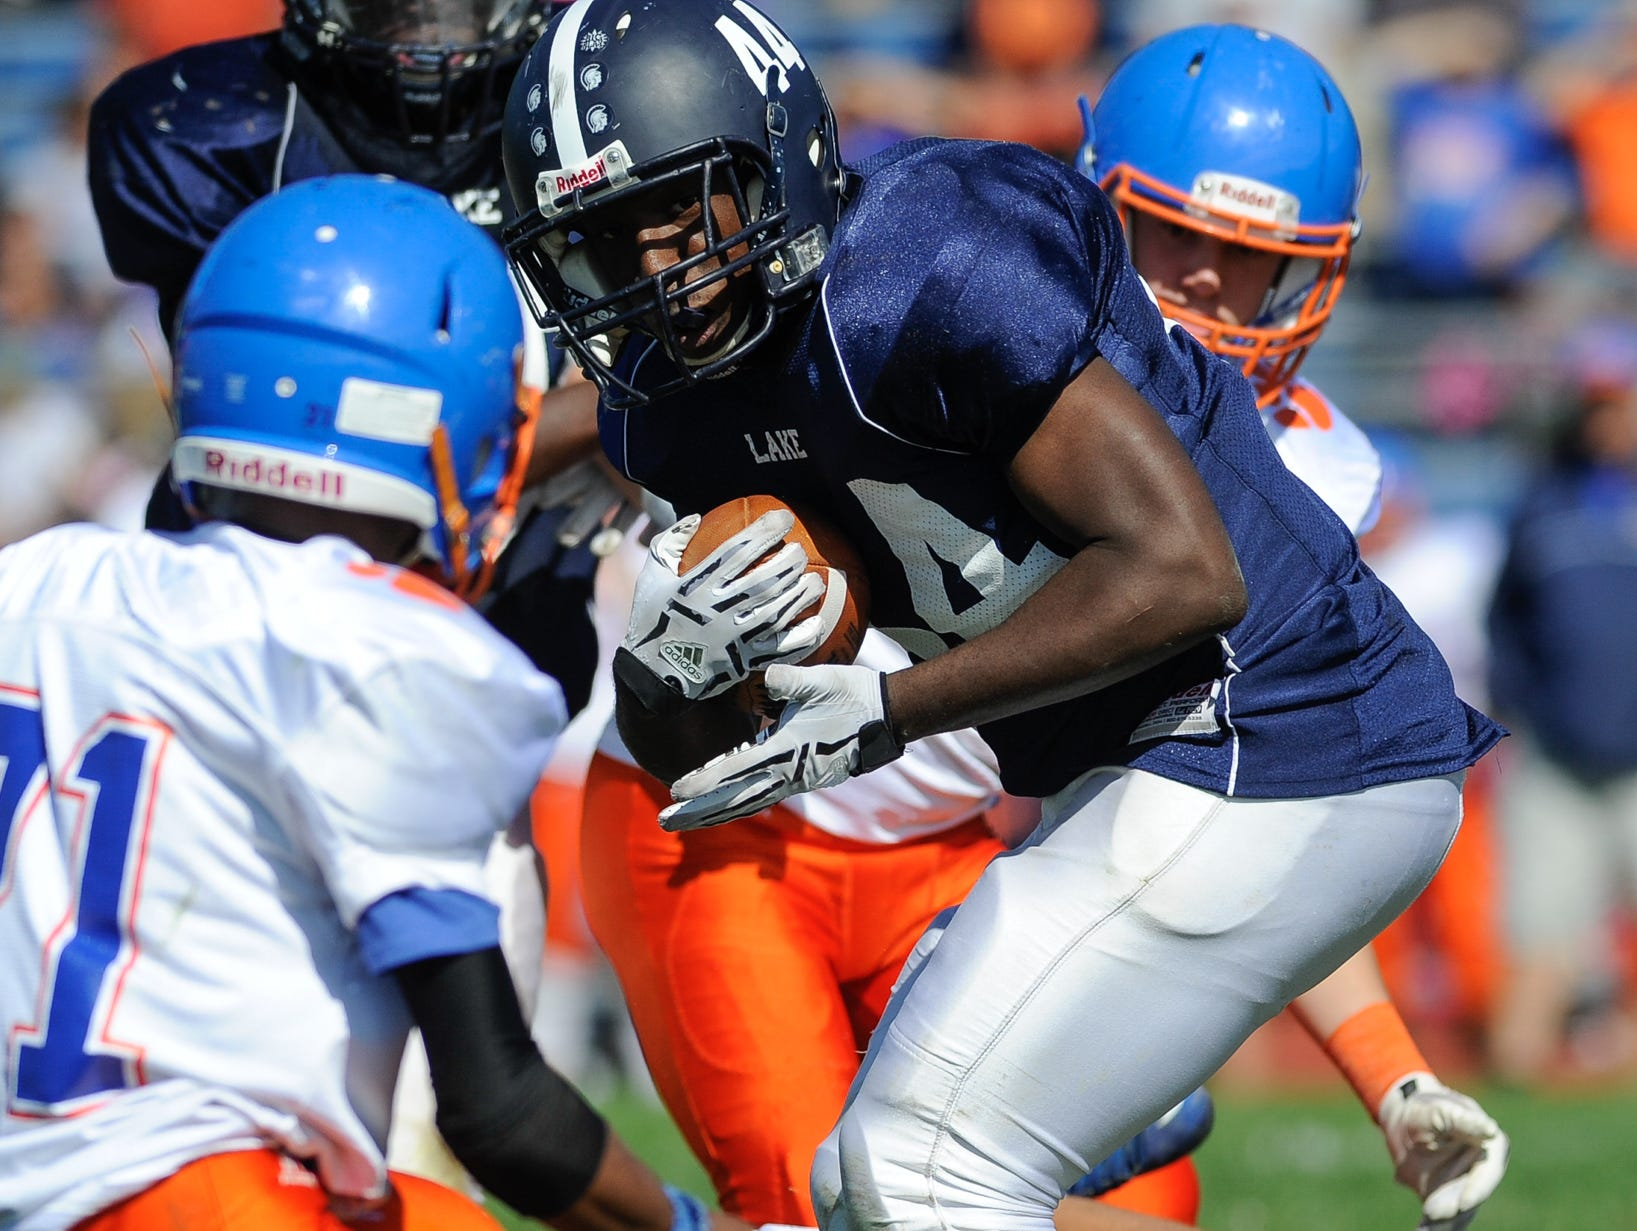 Lake Forest's #44 Amire White runs the ball in their 19-14 win over Delmar on Saturday at Lake Forest High School.